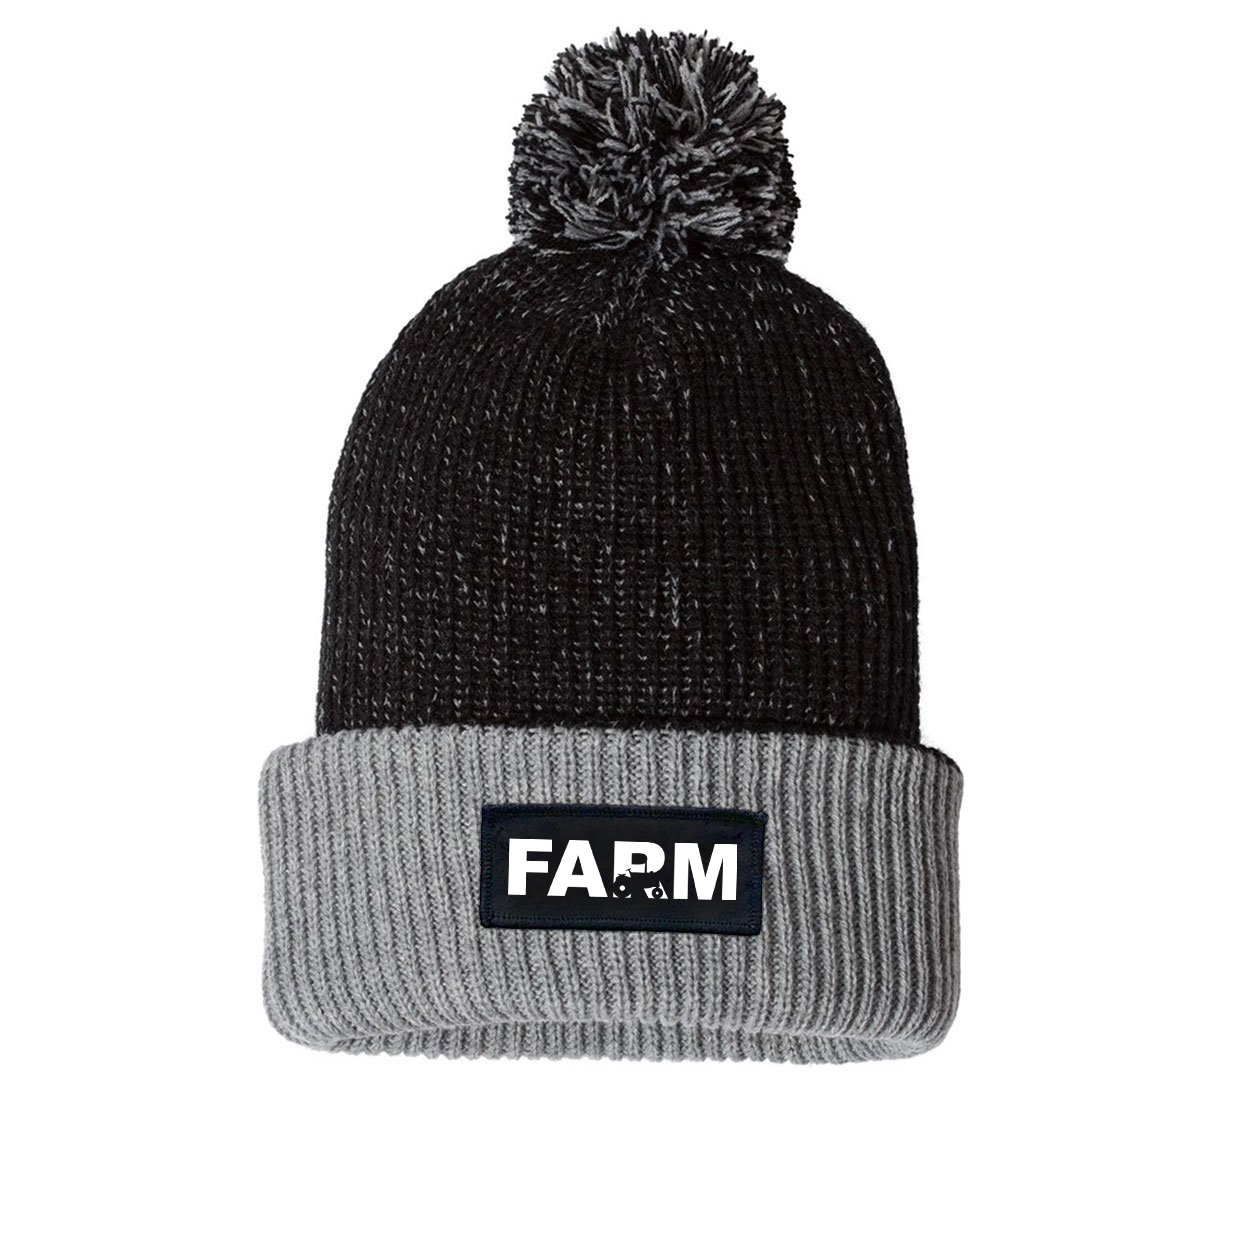 Farm Tractor Logo Night Out Woven Patch Roll Up Pom Knit Beanie Black/Gray (White Logo)